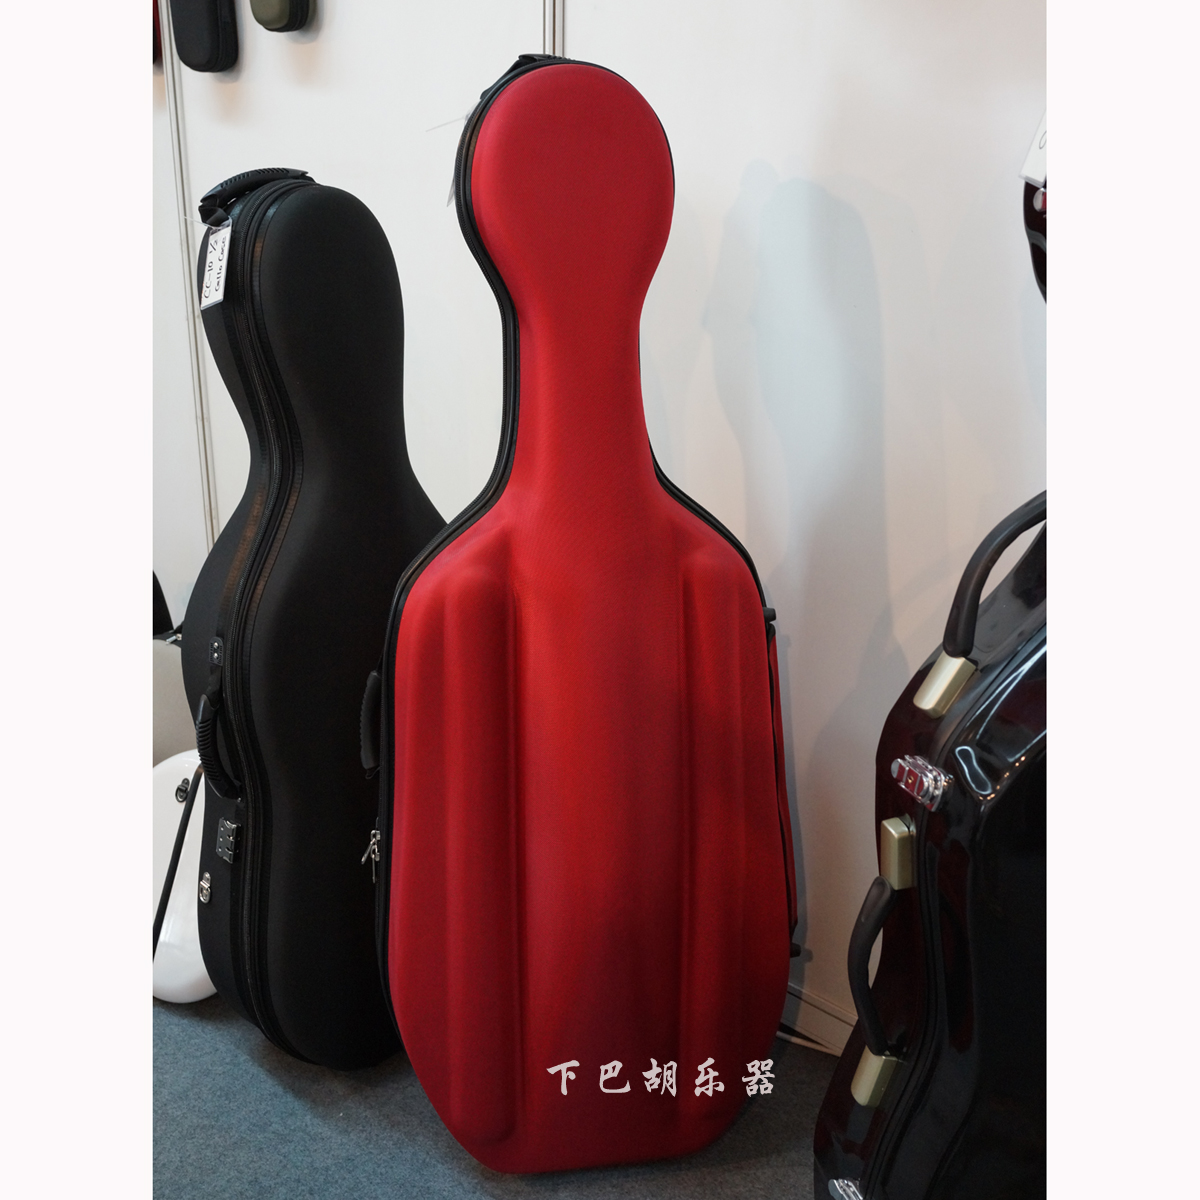 Cello hot box online shopping